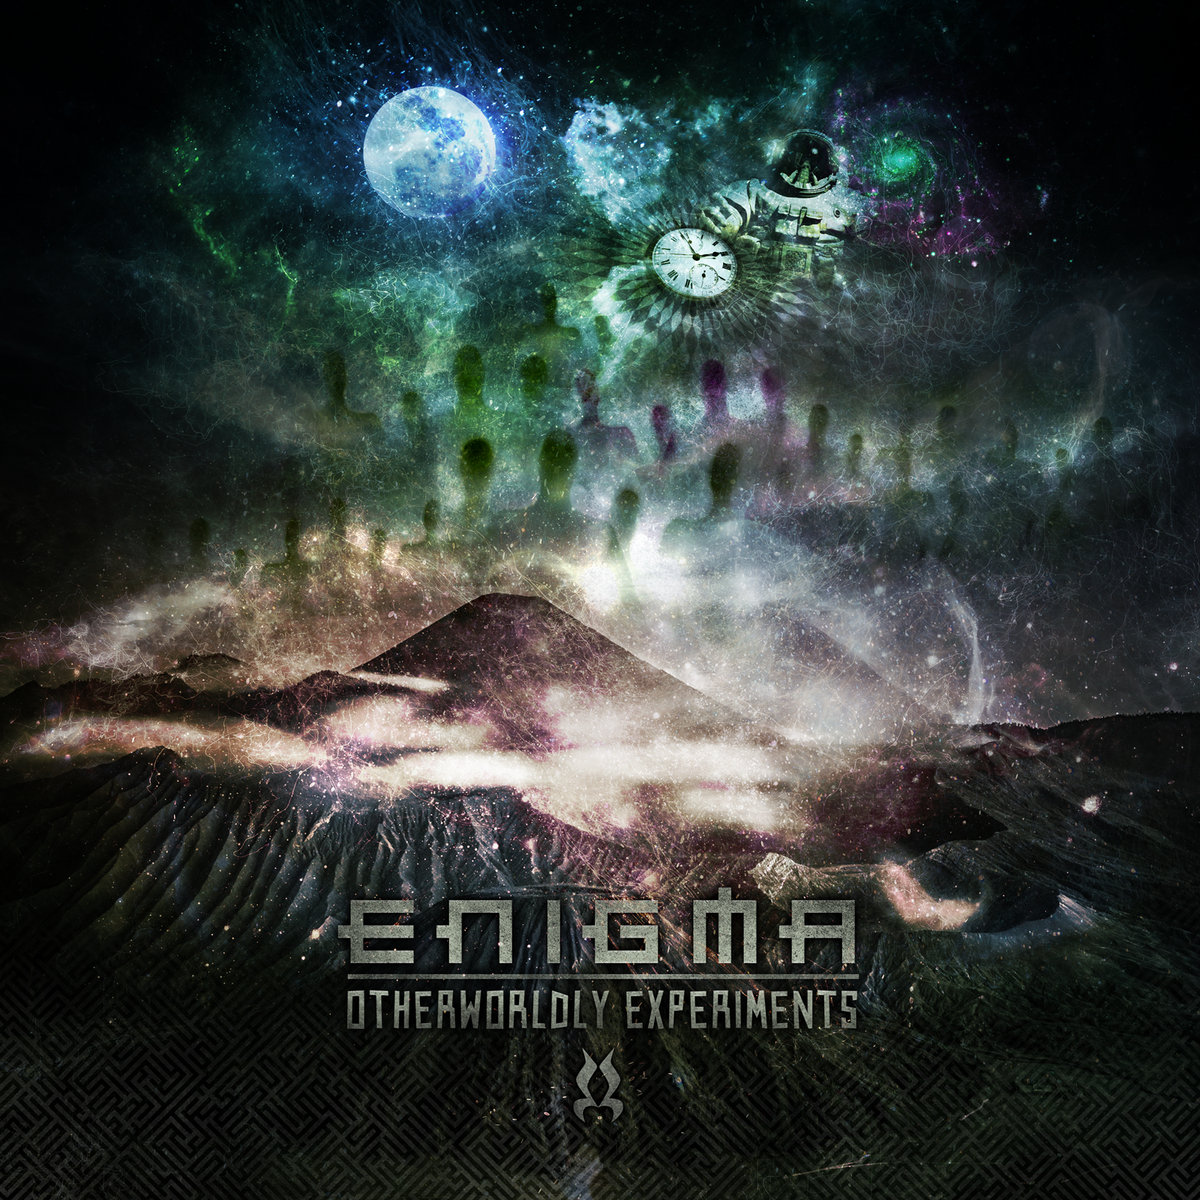 Free enigma audiobook mp3 online download | enigma.